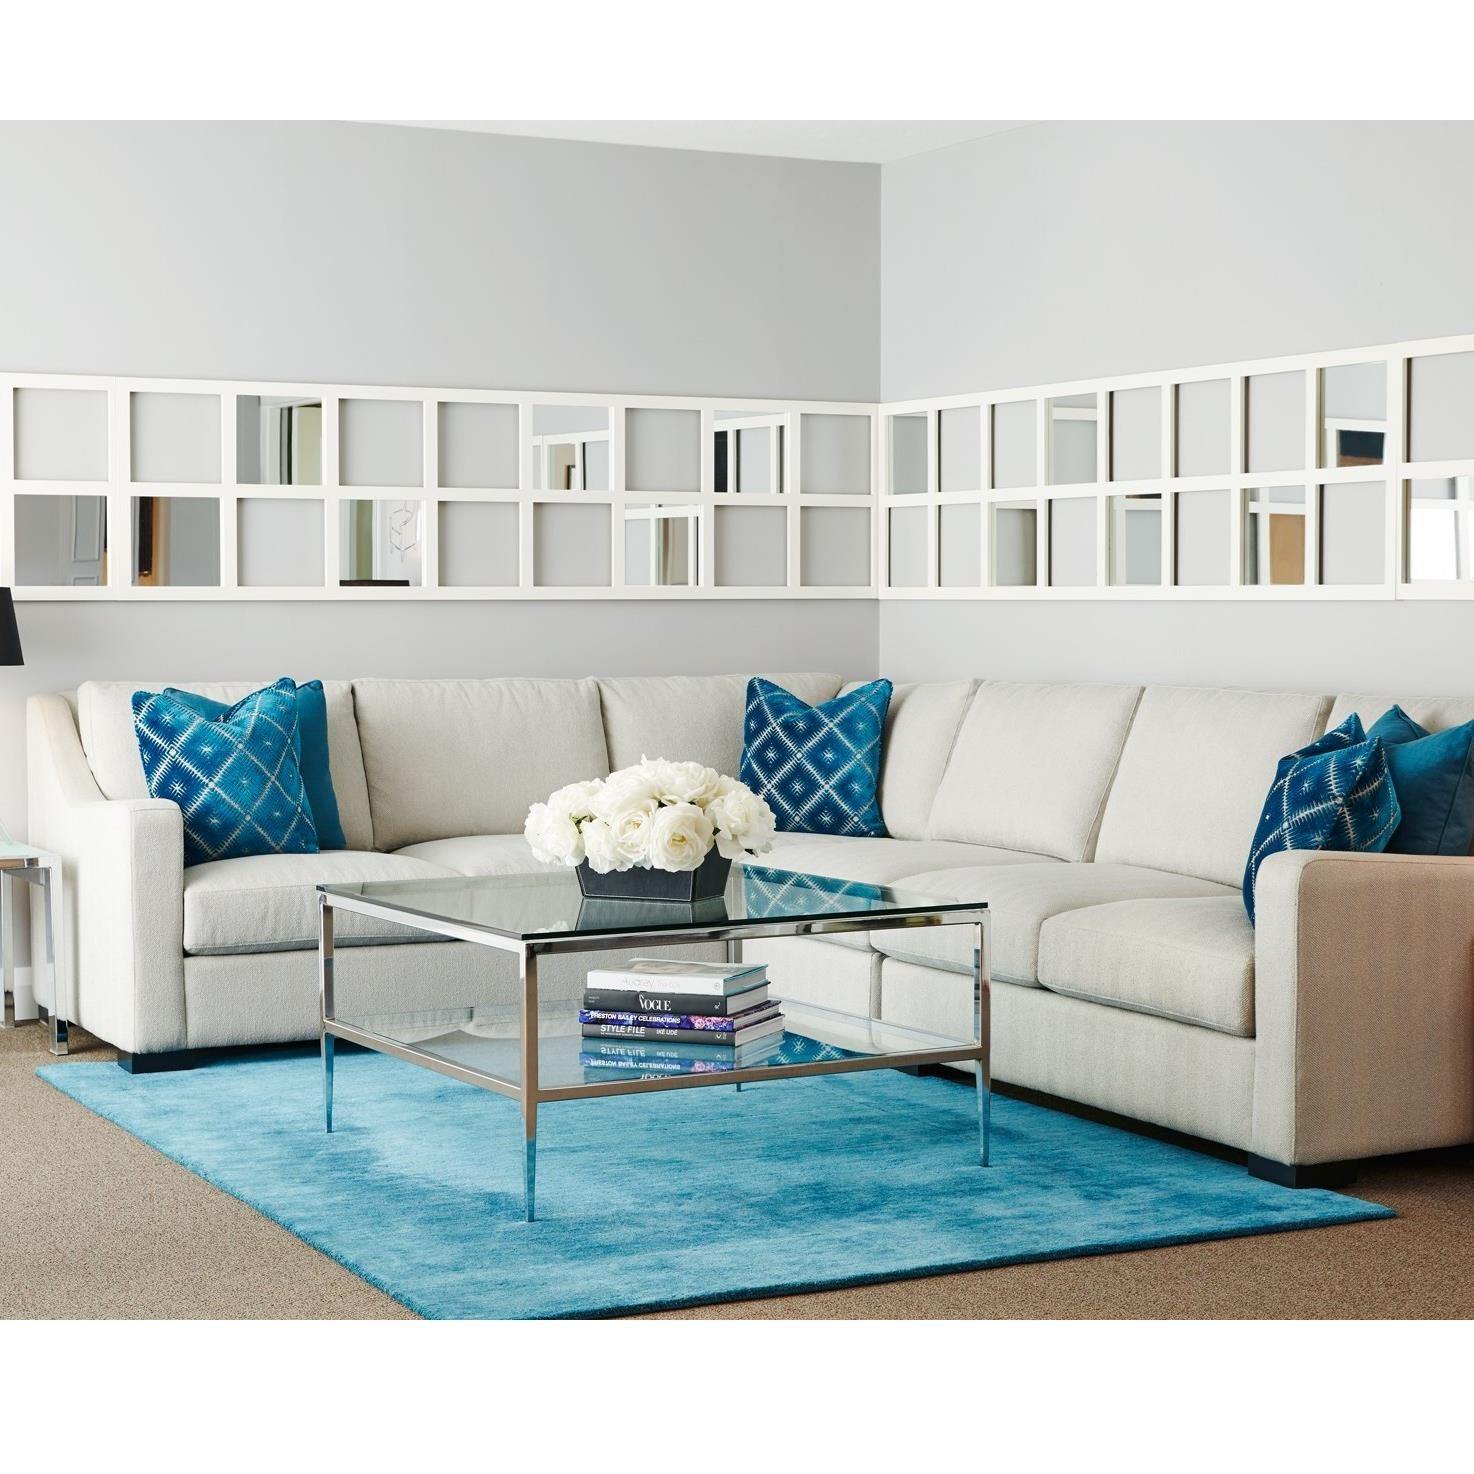 Monty Sectional by Brentwood Classics at Stoney Creek Furniture